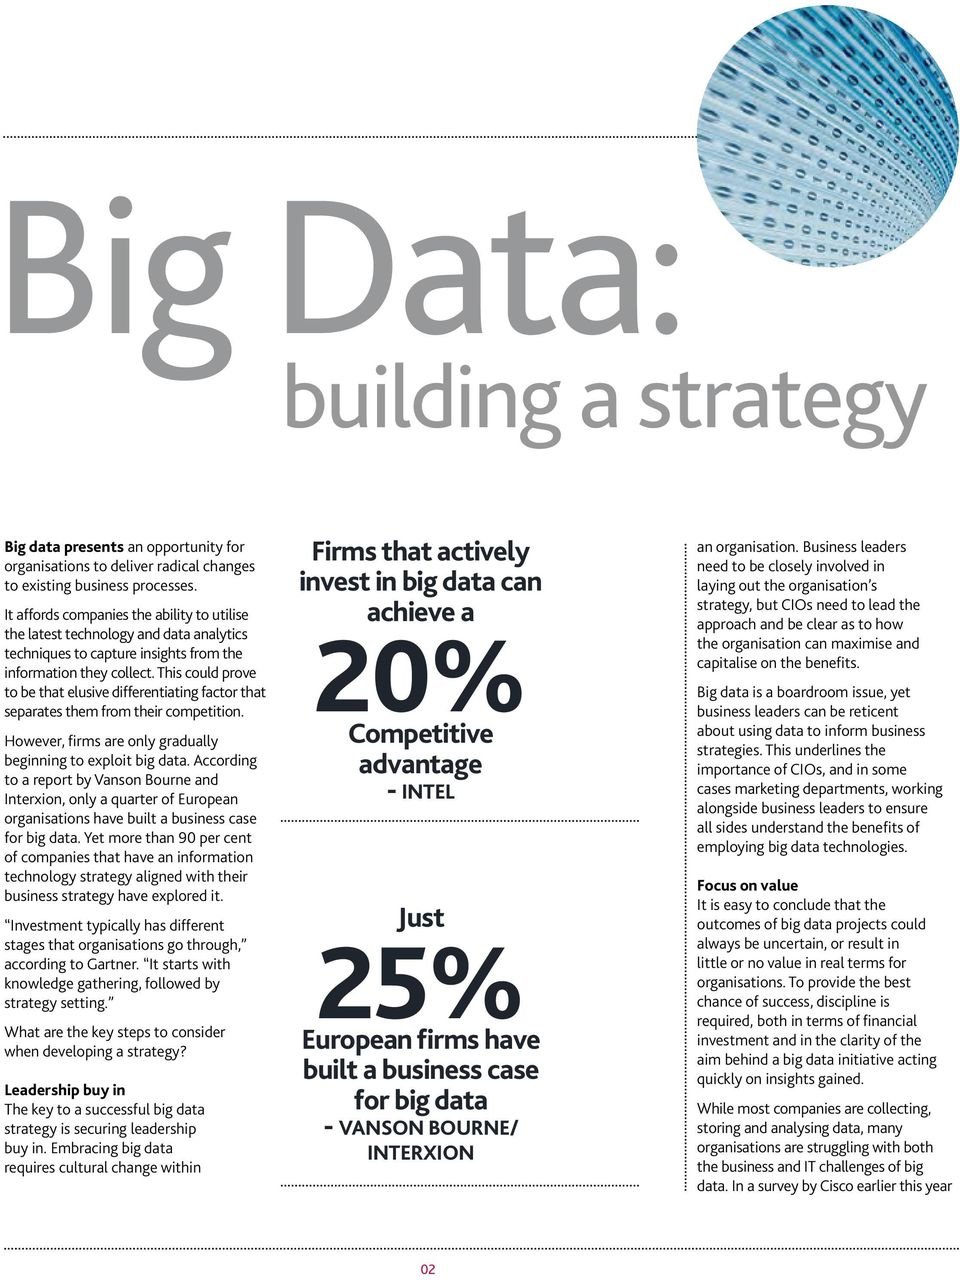 This could prove to be that elusive differentiating factor that separates them from their competition. However, firms are only gradually beginning to exploit big data.